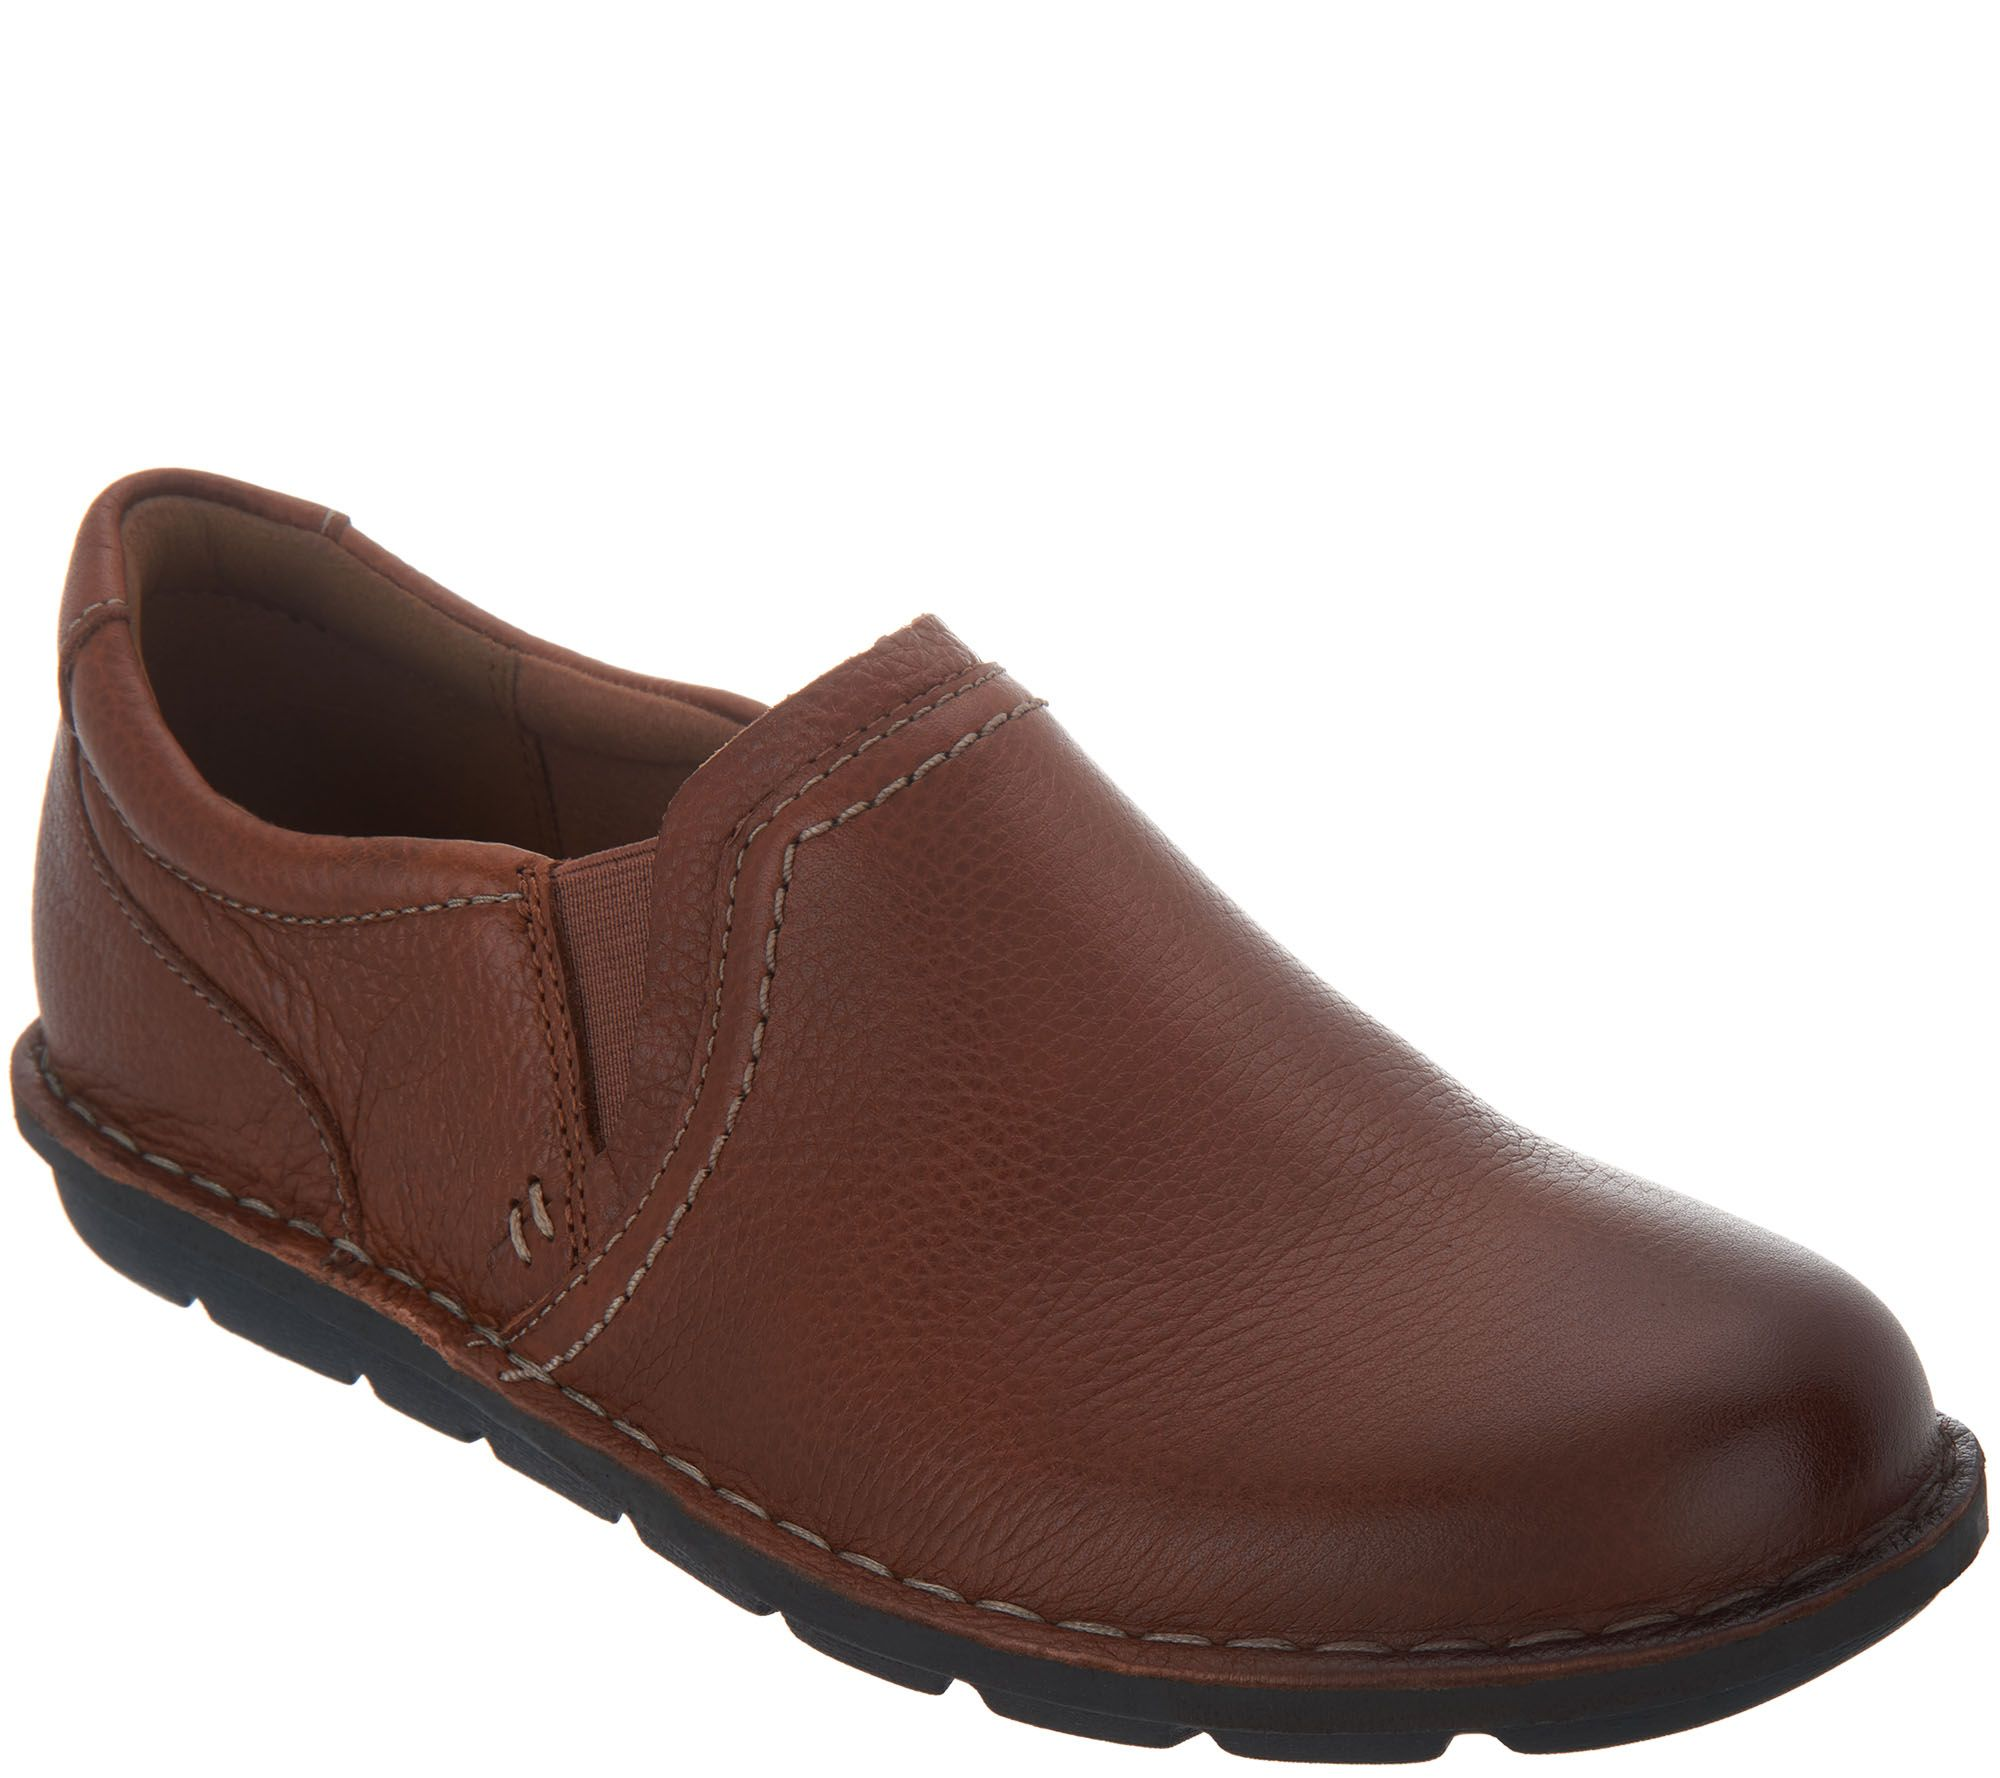 e2aae80ca Clarks Leather Slip-On Shoes - Janice Barrie - Page 1 — QVC.com